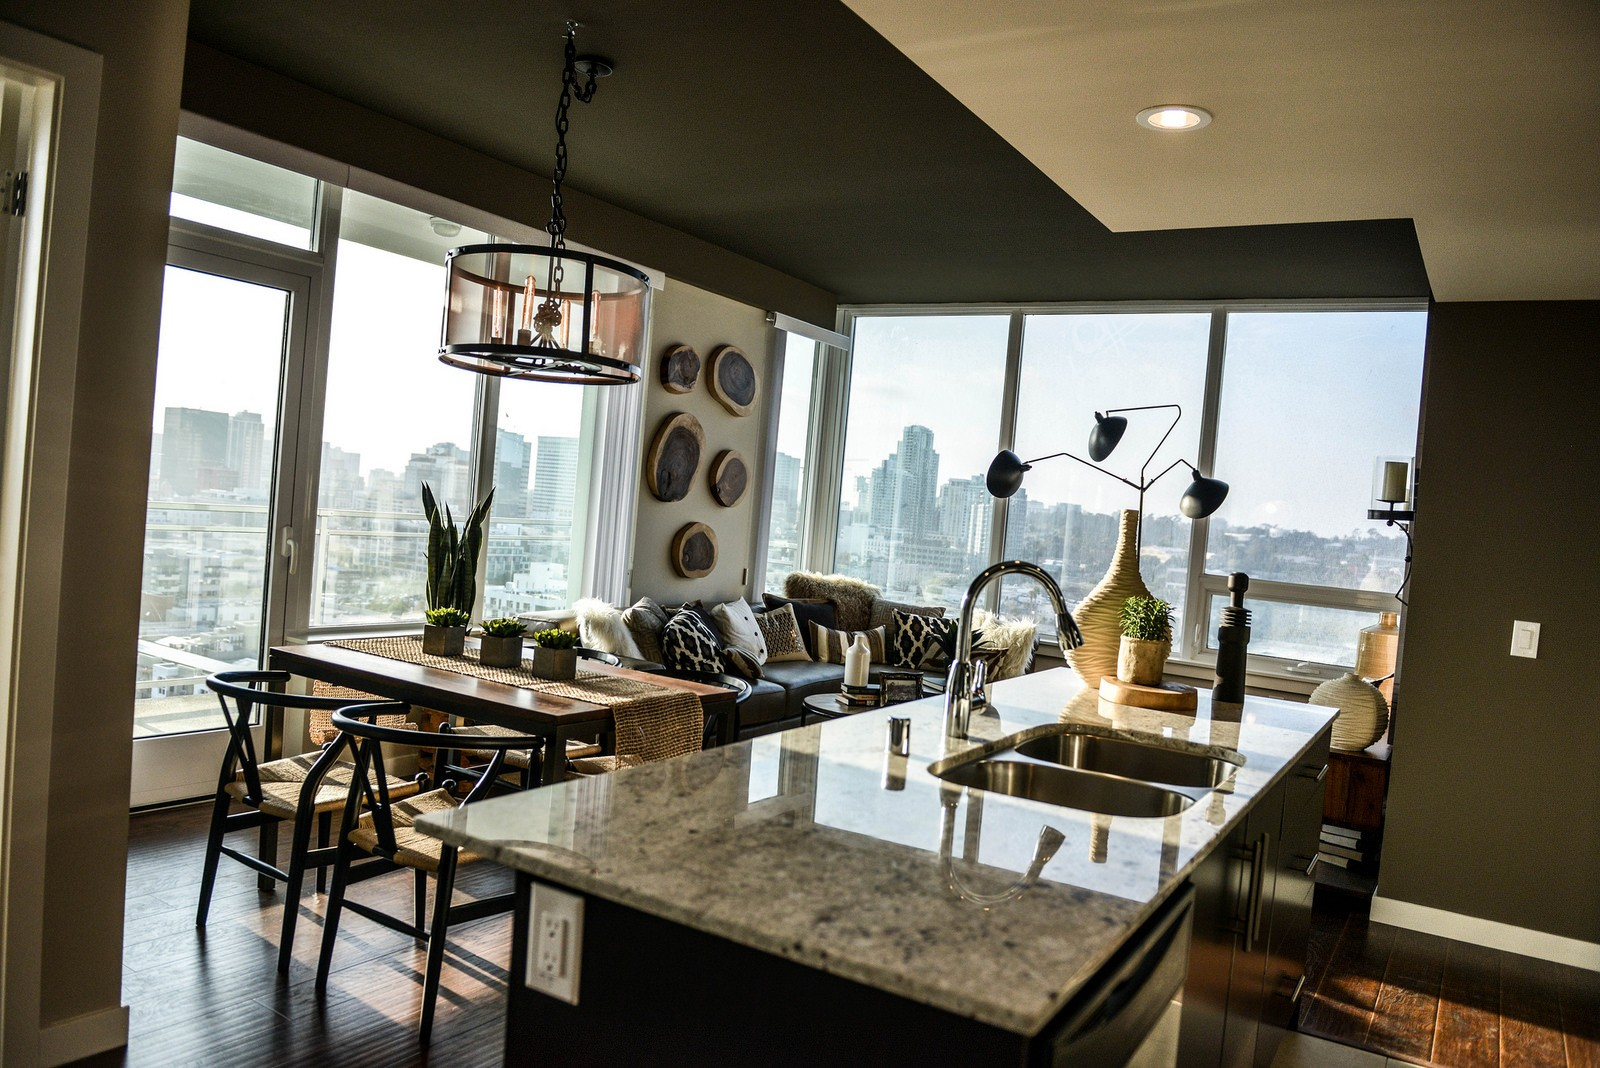 Kitchen In 2 Bedroom Apartment At Pinnacle On The Park In San Diego, CA